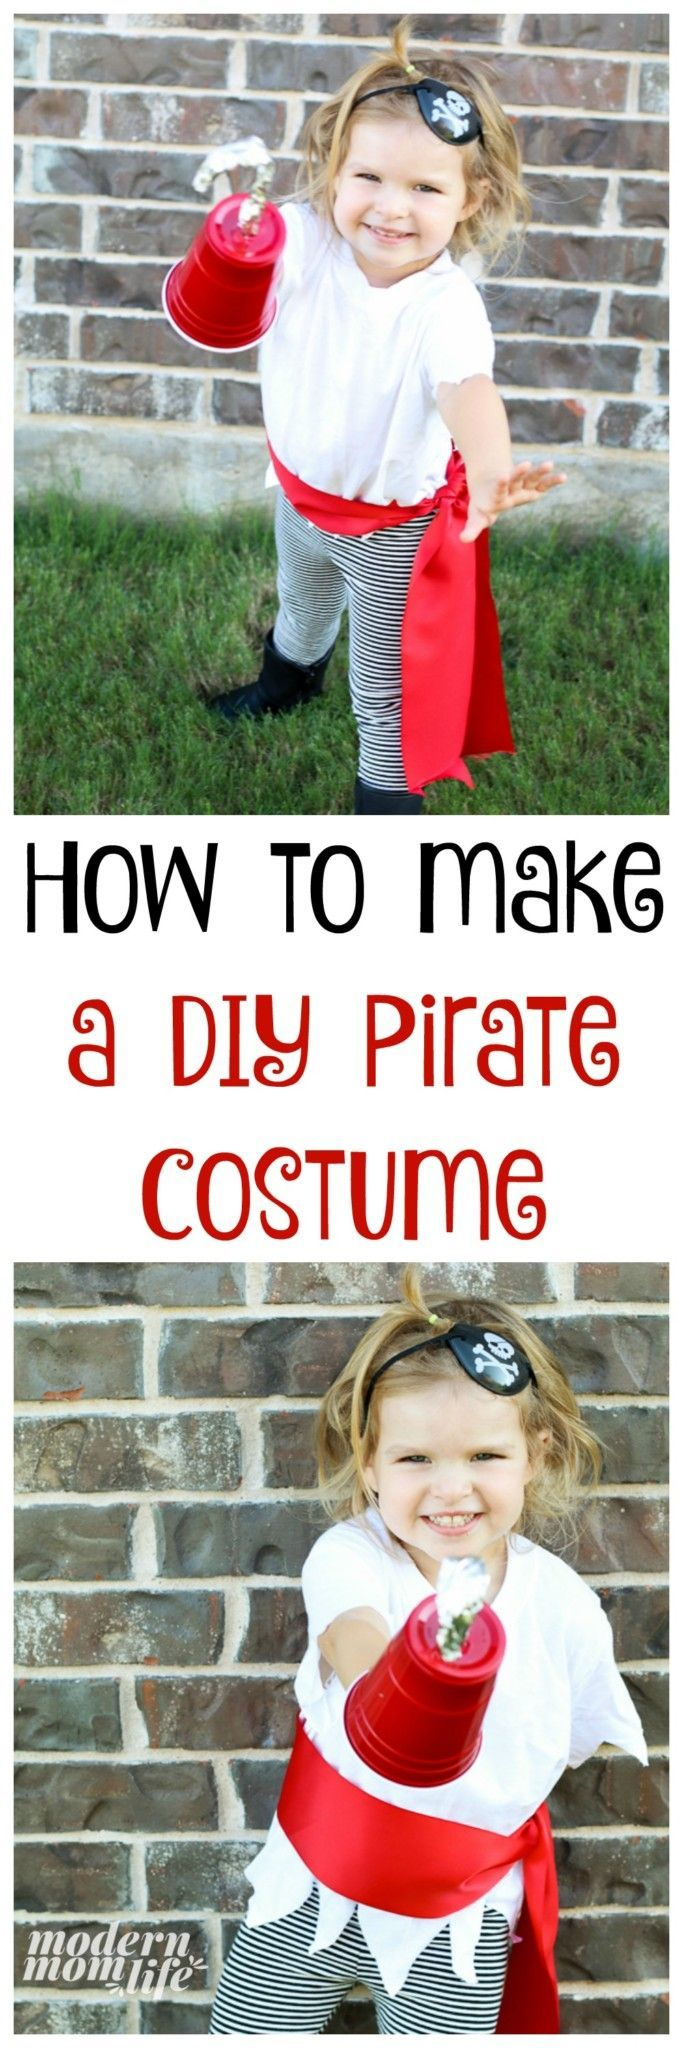 How to Make a DIY Pirate Costume for The Best Pirate Story Never Told #diypiratecostumeforkids